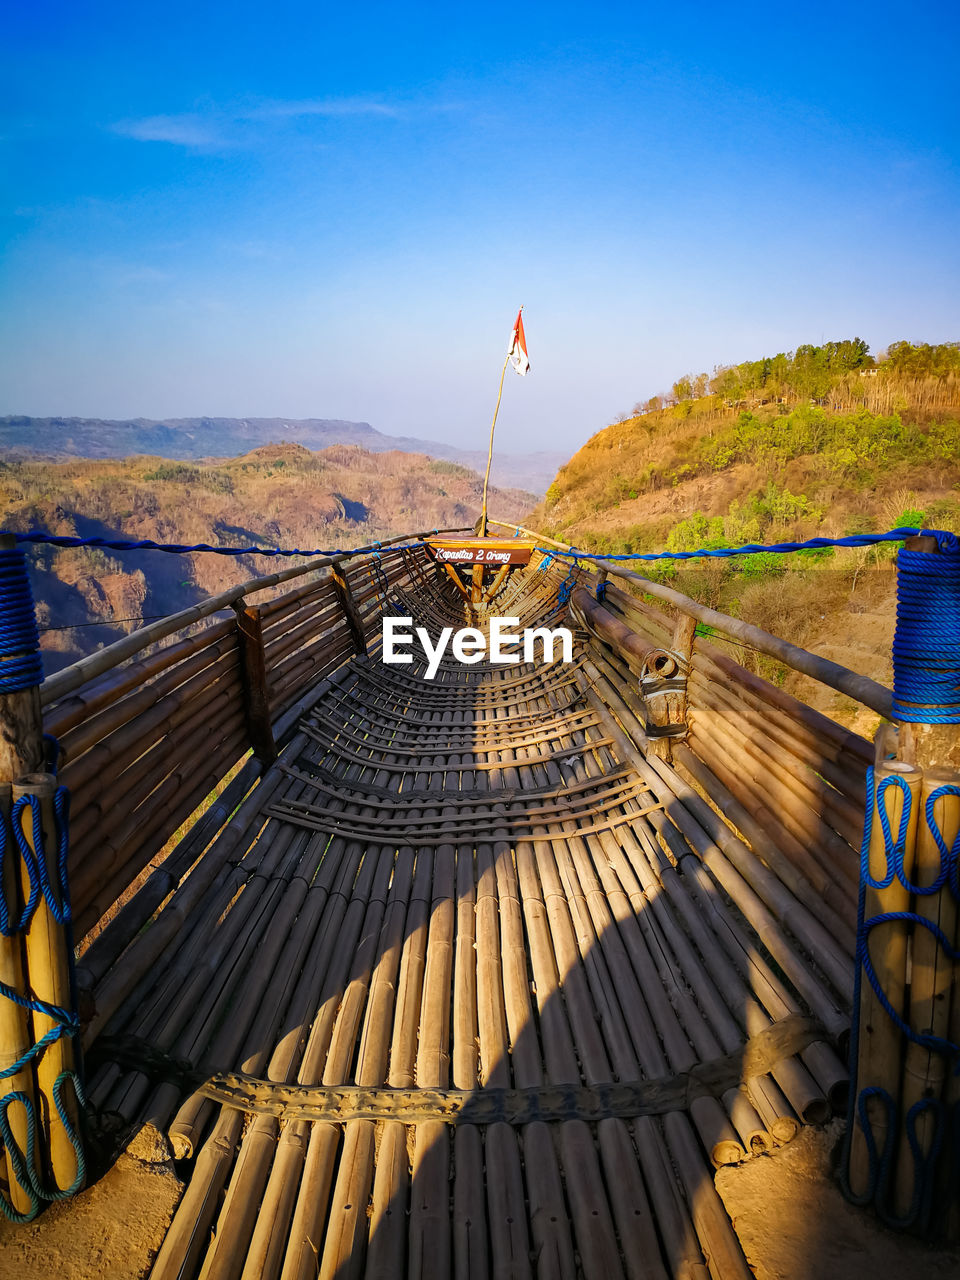 sky, nature, scenics - nature, beauty in nature, day, blue, wood - material, water, flag, tranquility, mountain, tranquil scene, railing, no people, non-urban scene, architecture, sunlight, outdoors, landscape